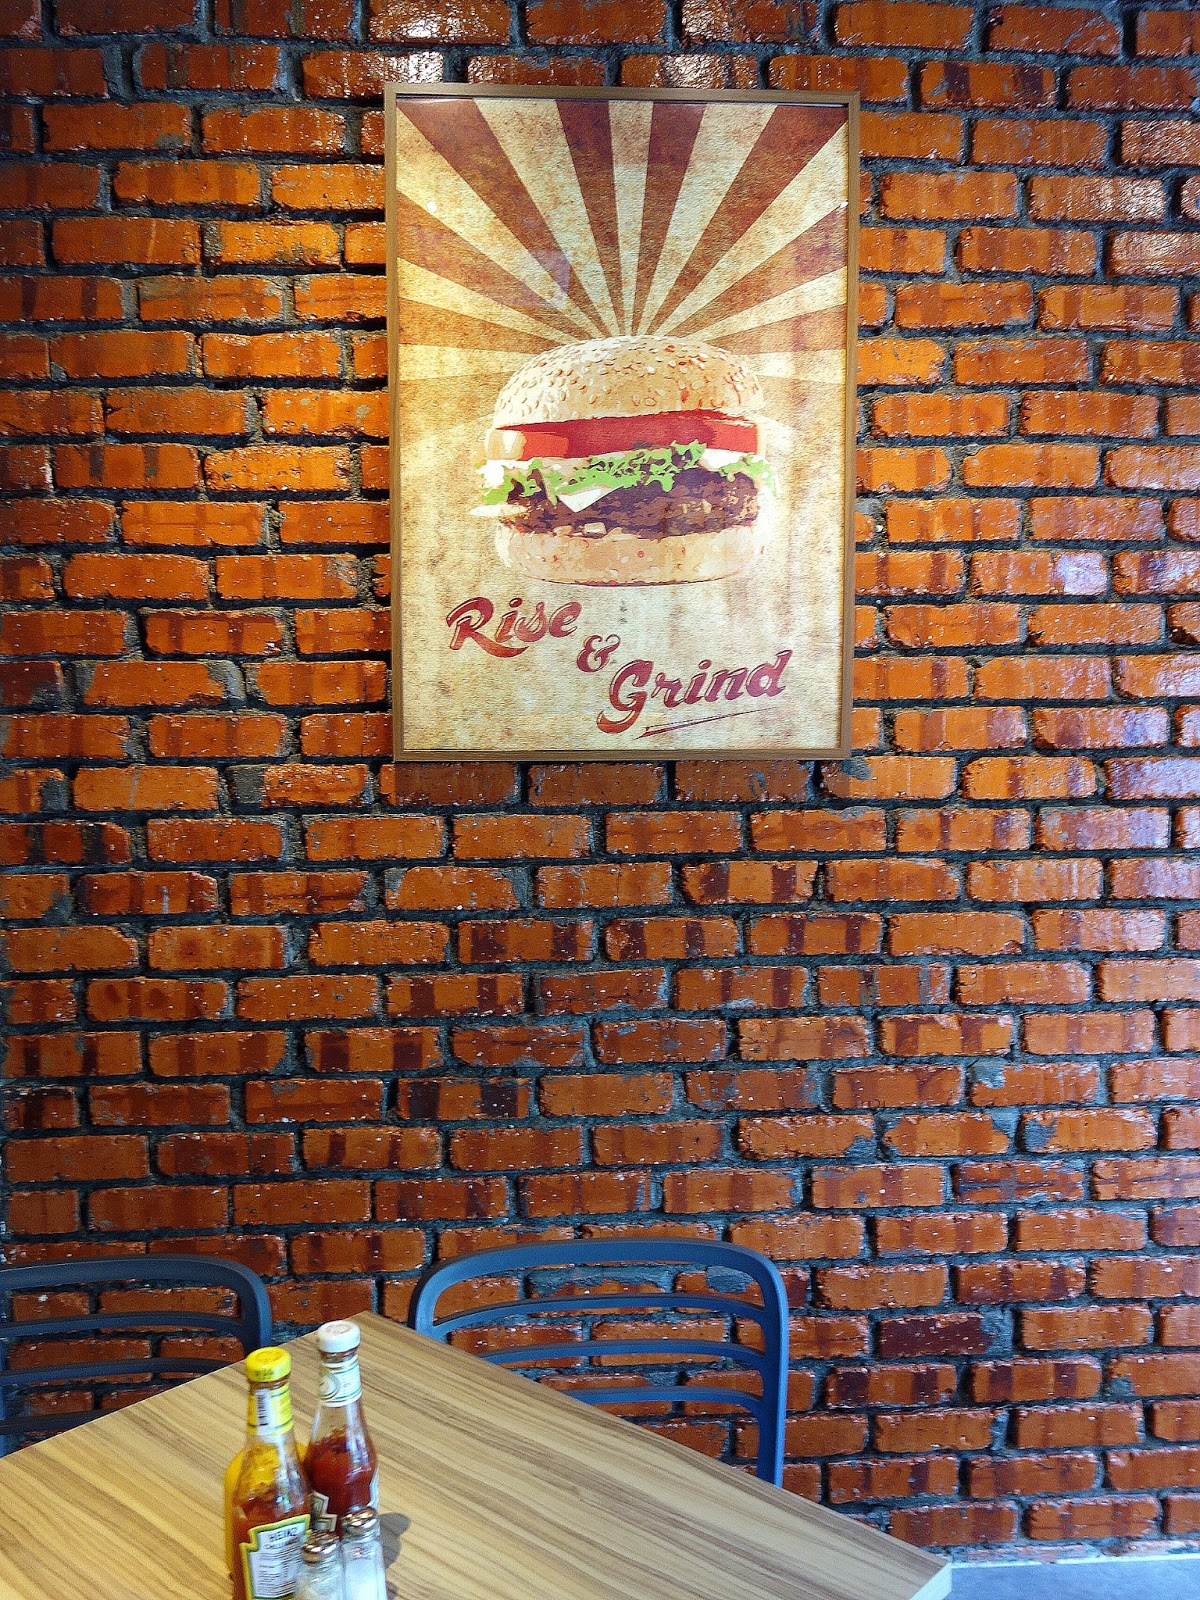 A photo of the deco at The Grind Burger Bar in PJ.